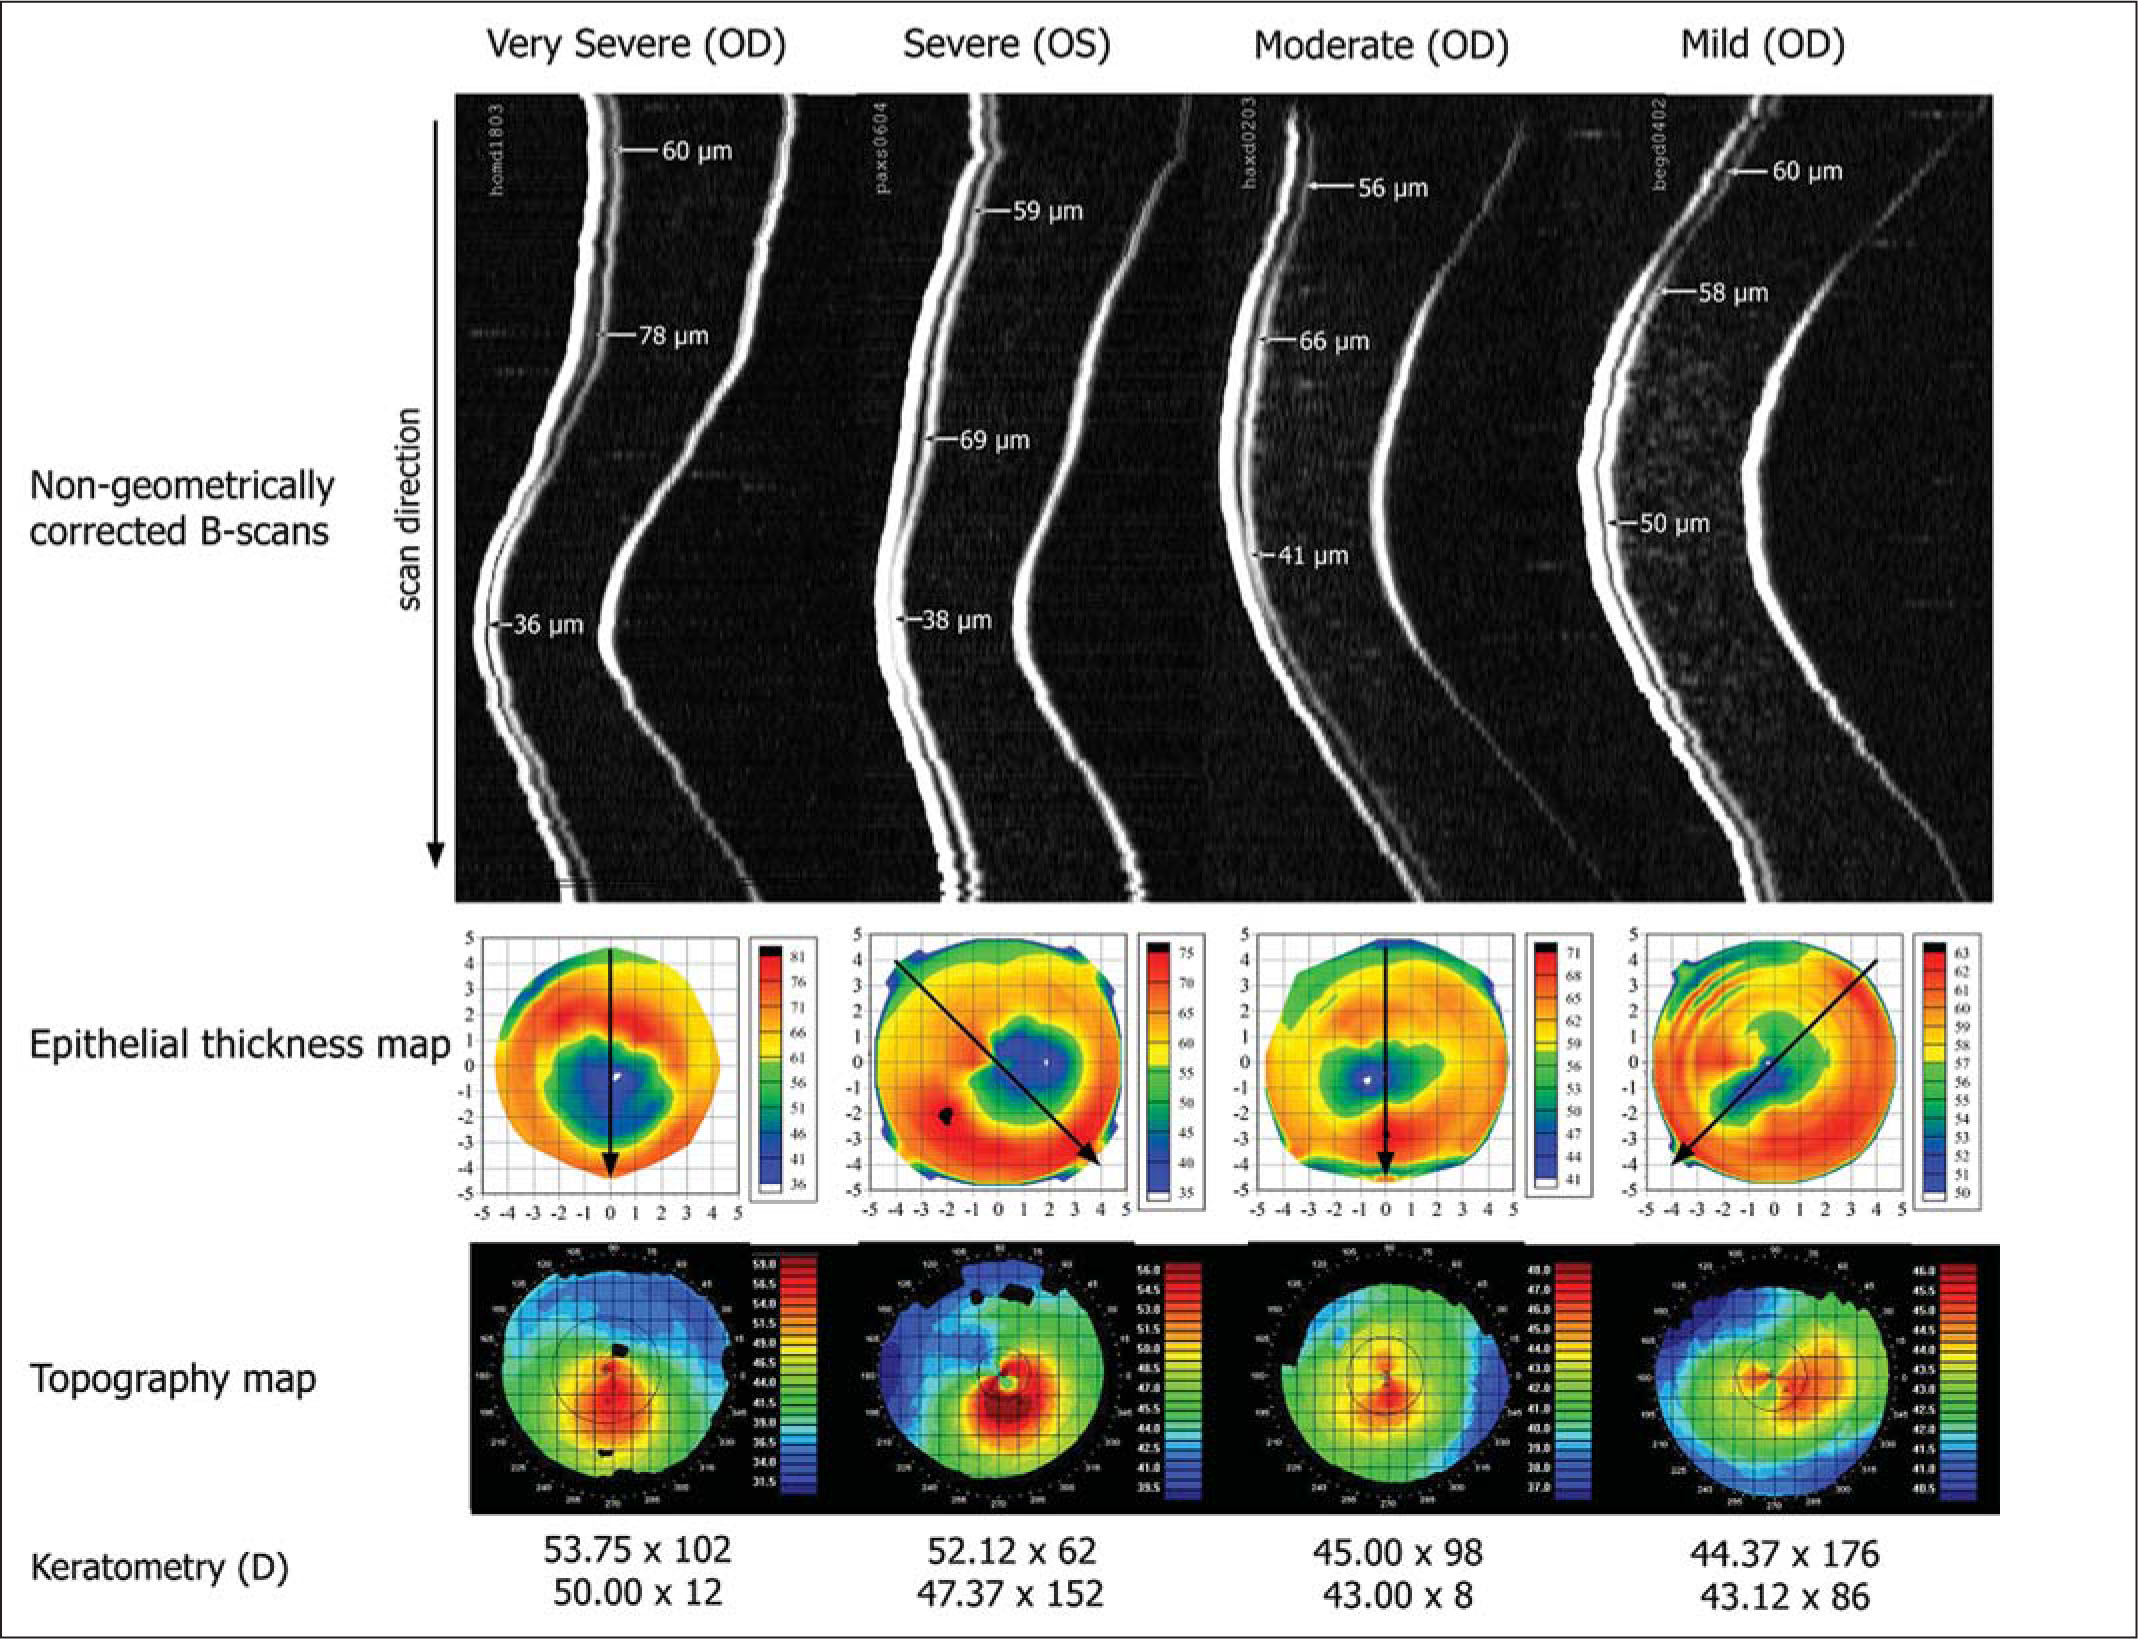 Non-Geometrically Corrected Artemis B-scan Images Obtained Using the Artemis Very High-Frequency Digital Ultrasound Arc-Scanner, Artemis Epithelial Thickness Profile Maps, and Atlas Axial Curvature Maps for Four Keratoconic Corneas at Different Stages of the Disease Ranging from Severe Keratoconus to Mild Keratoconus.